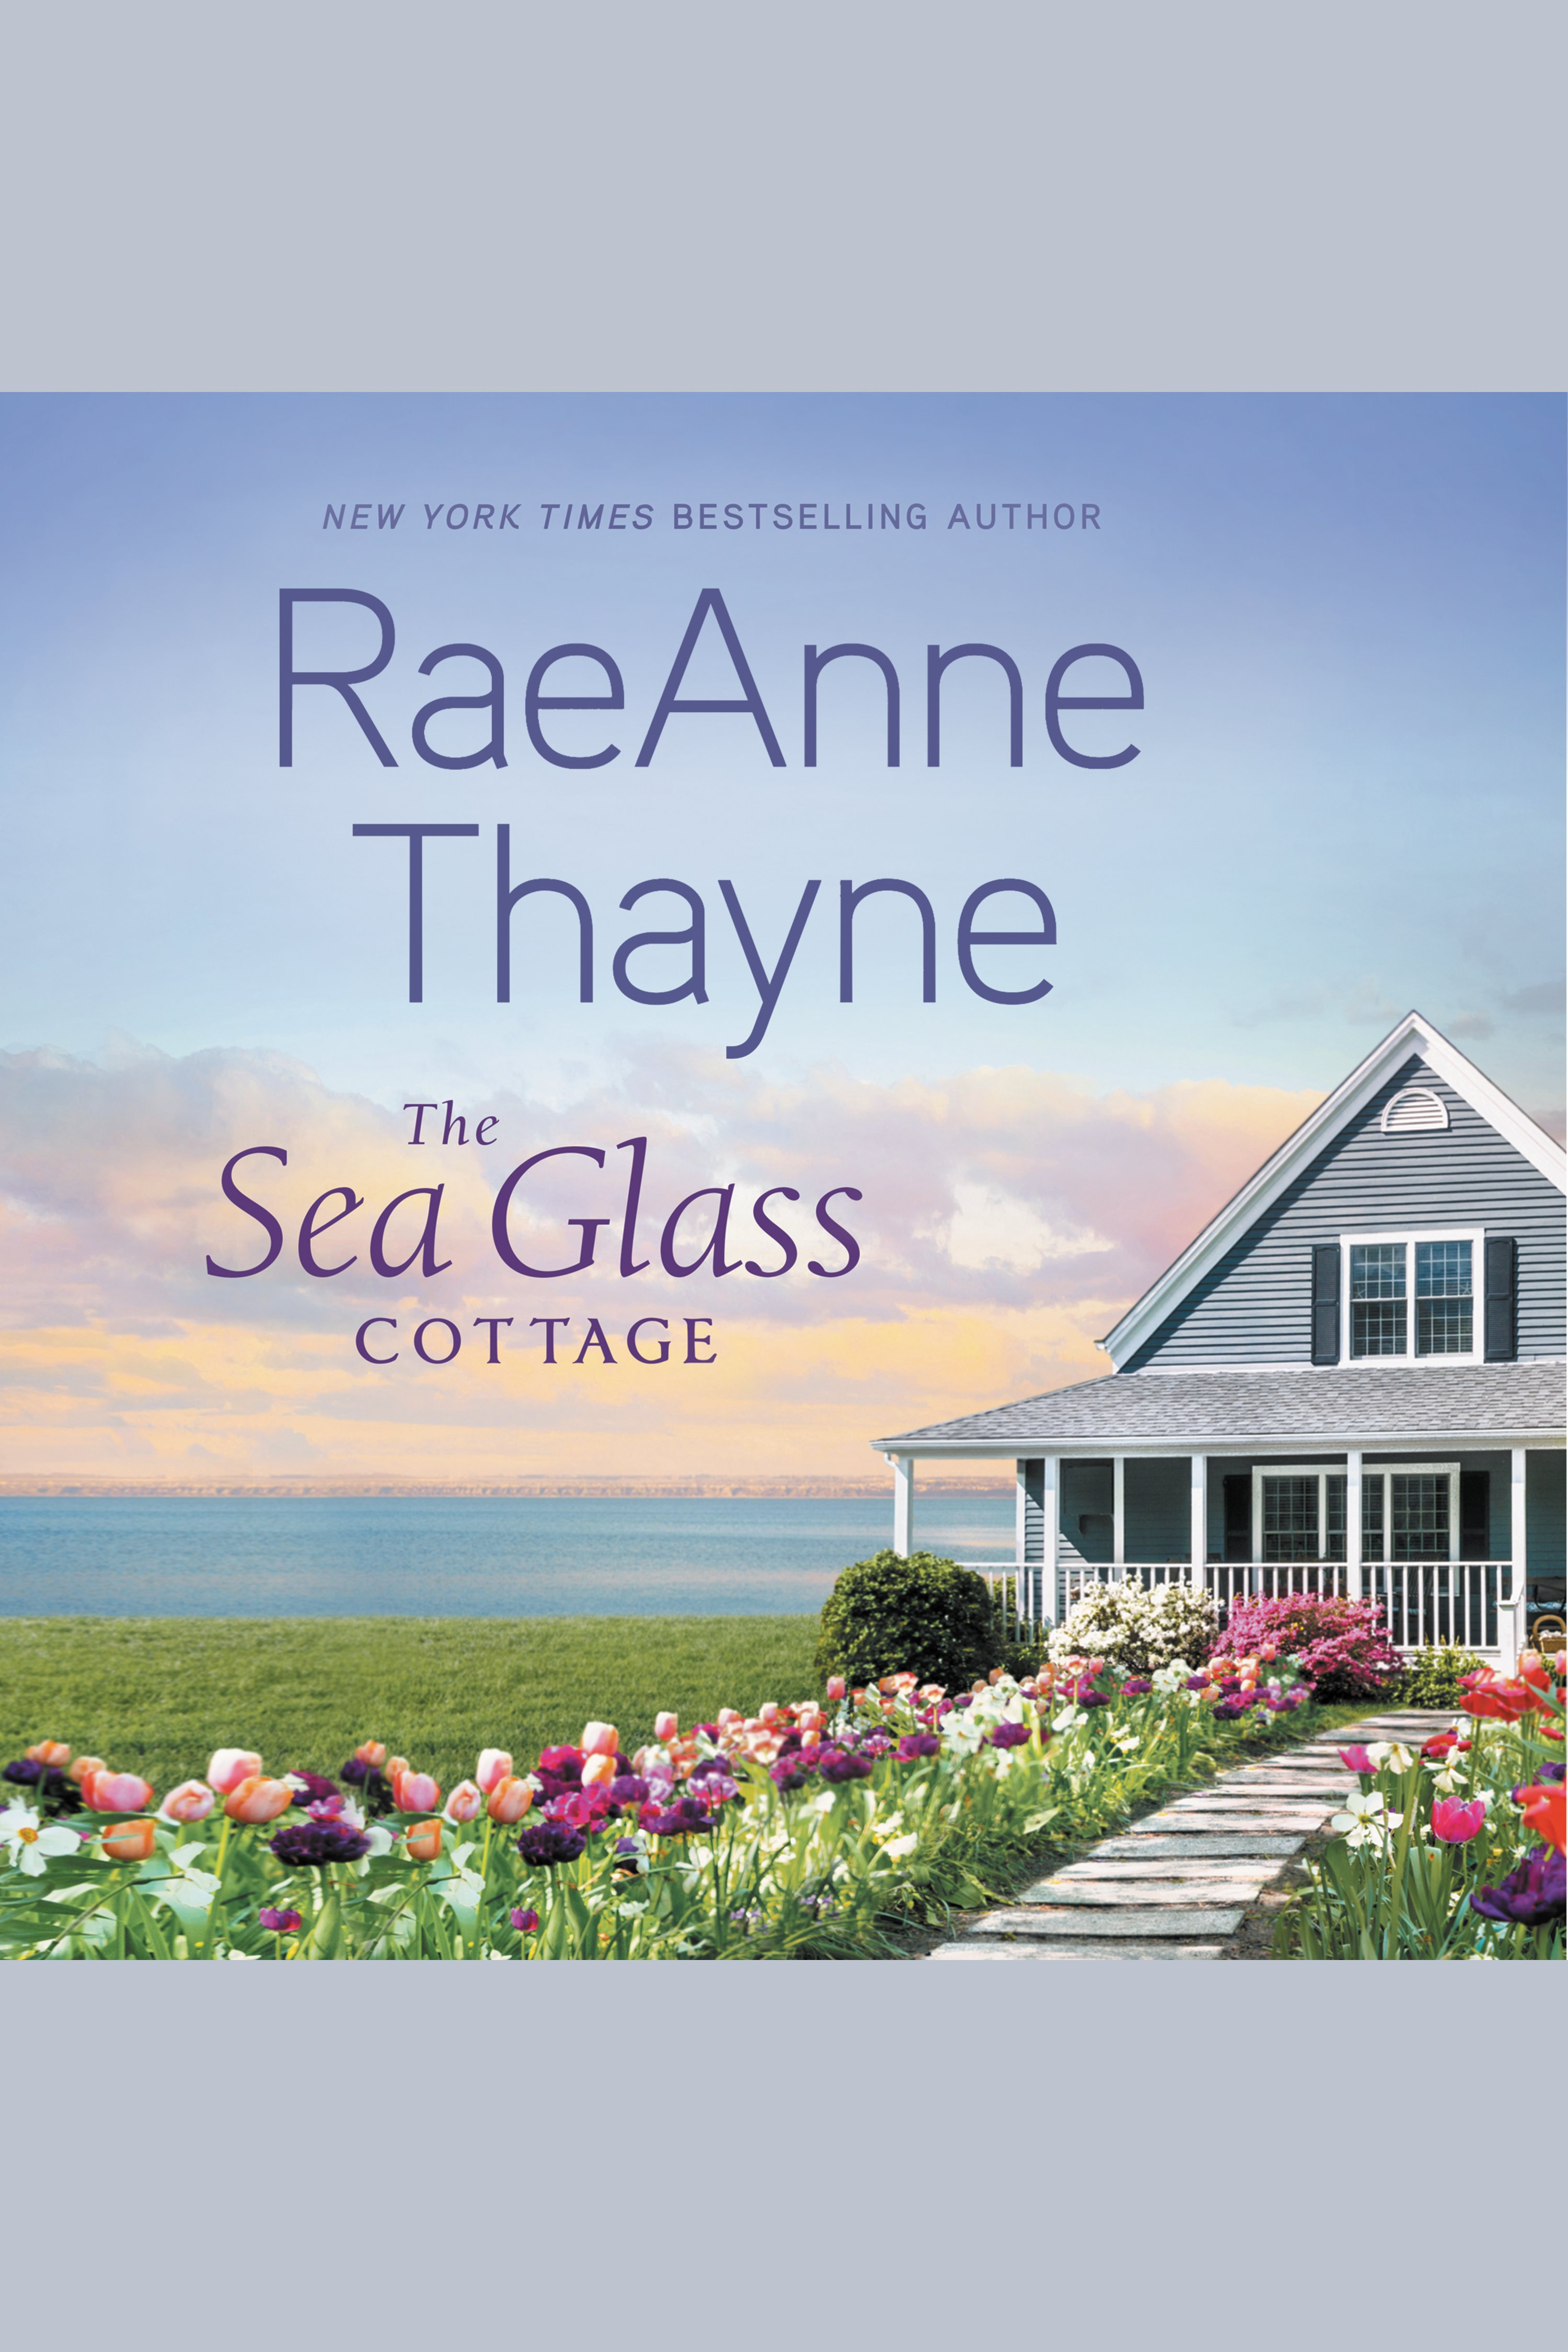 The Sea Glass Cottage